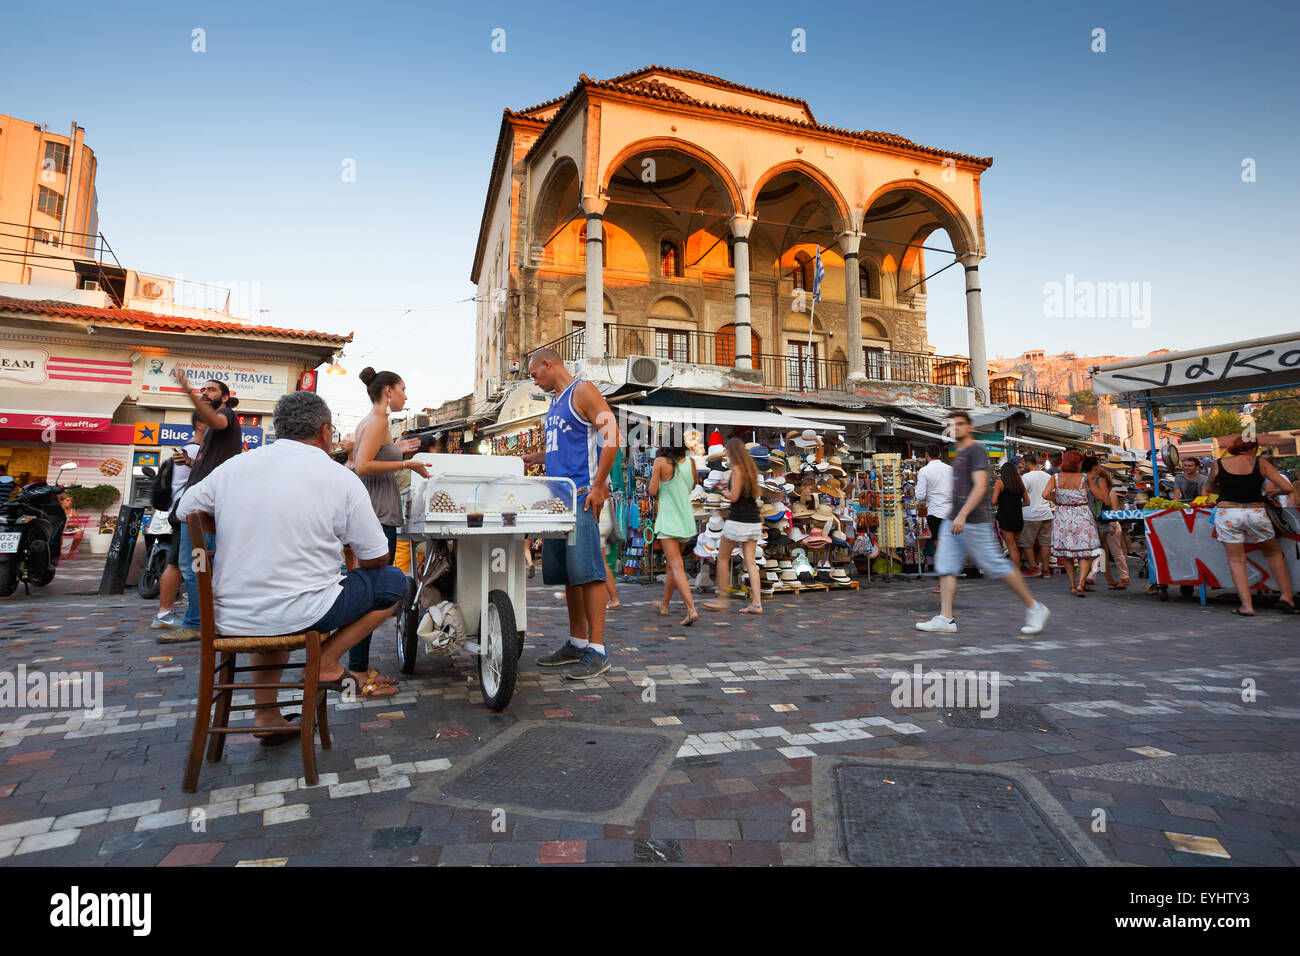 Sweets seller at the mosque in Monastiraki square in Athens, Greece - Stock Image